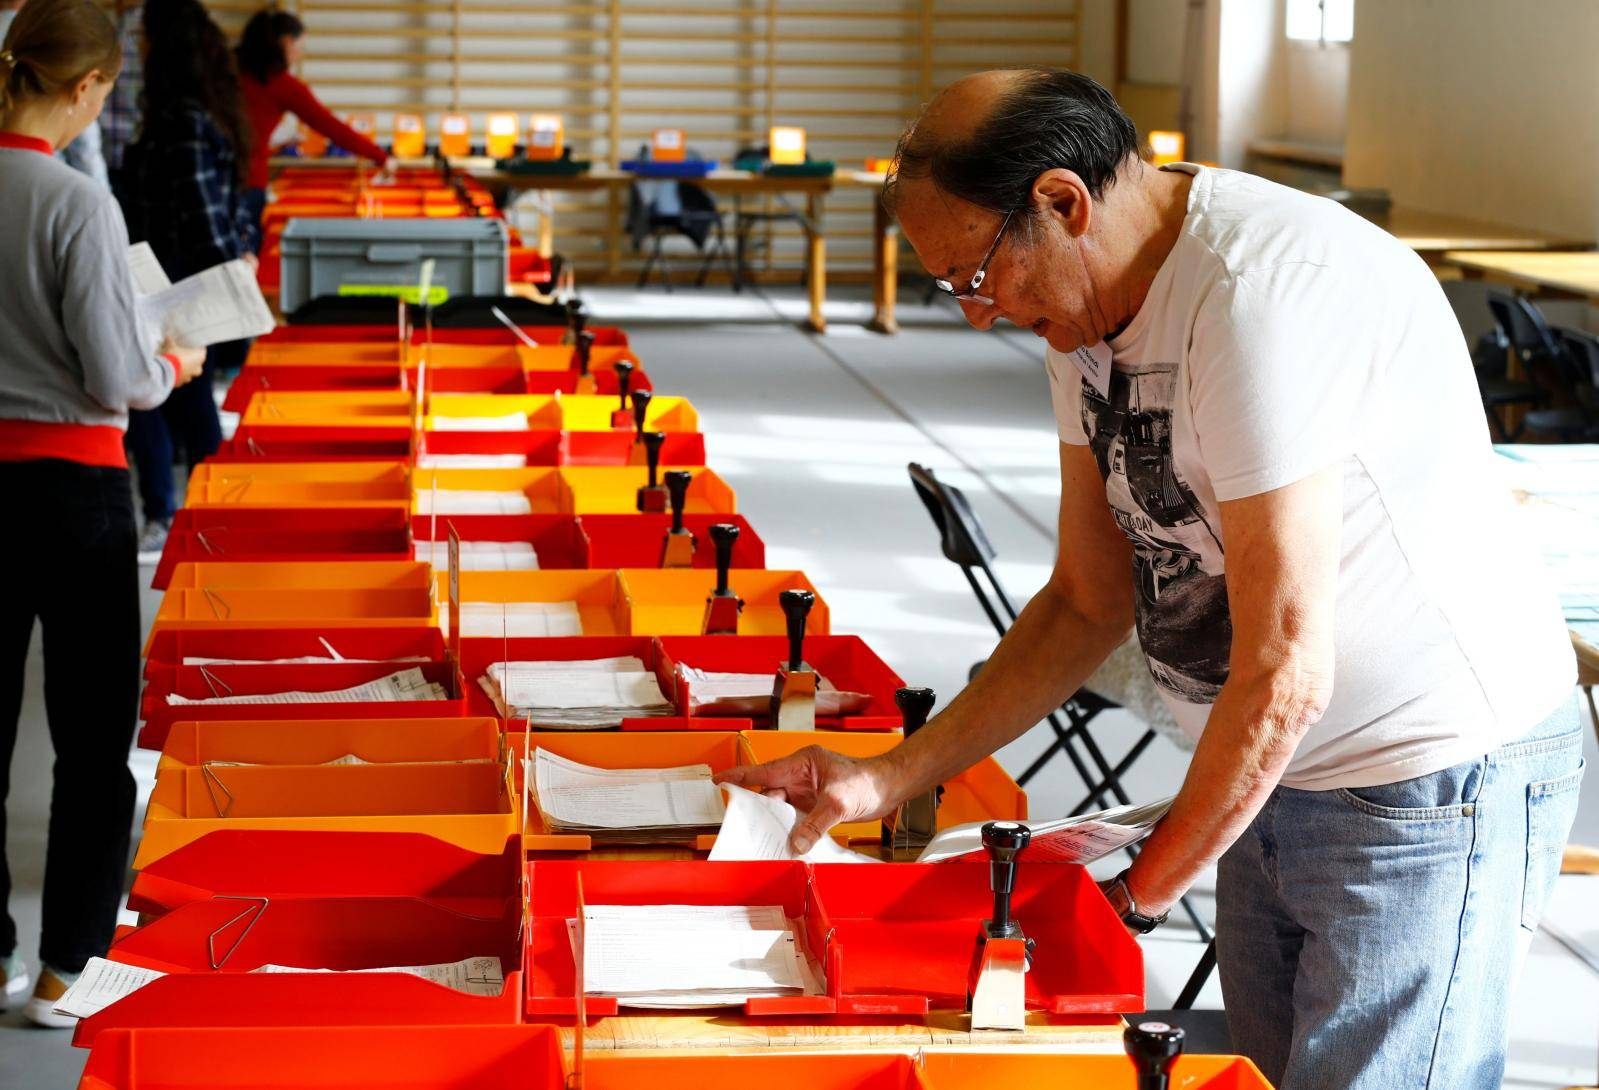 Member of the district election office Stadtkreis 3 sorts ballots for the Swiss federal elections in Zurich